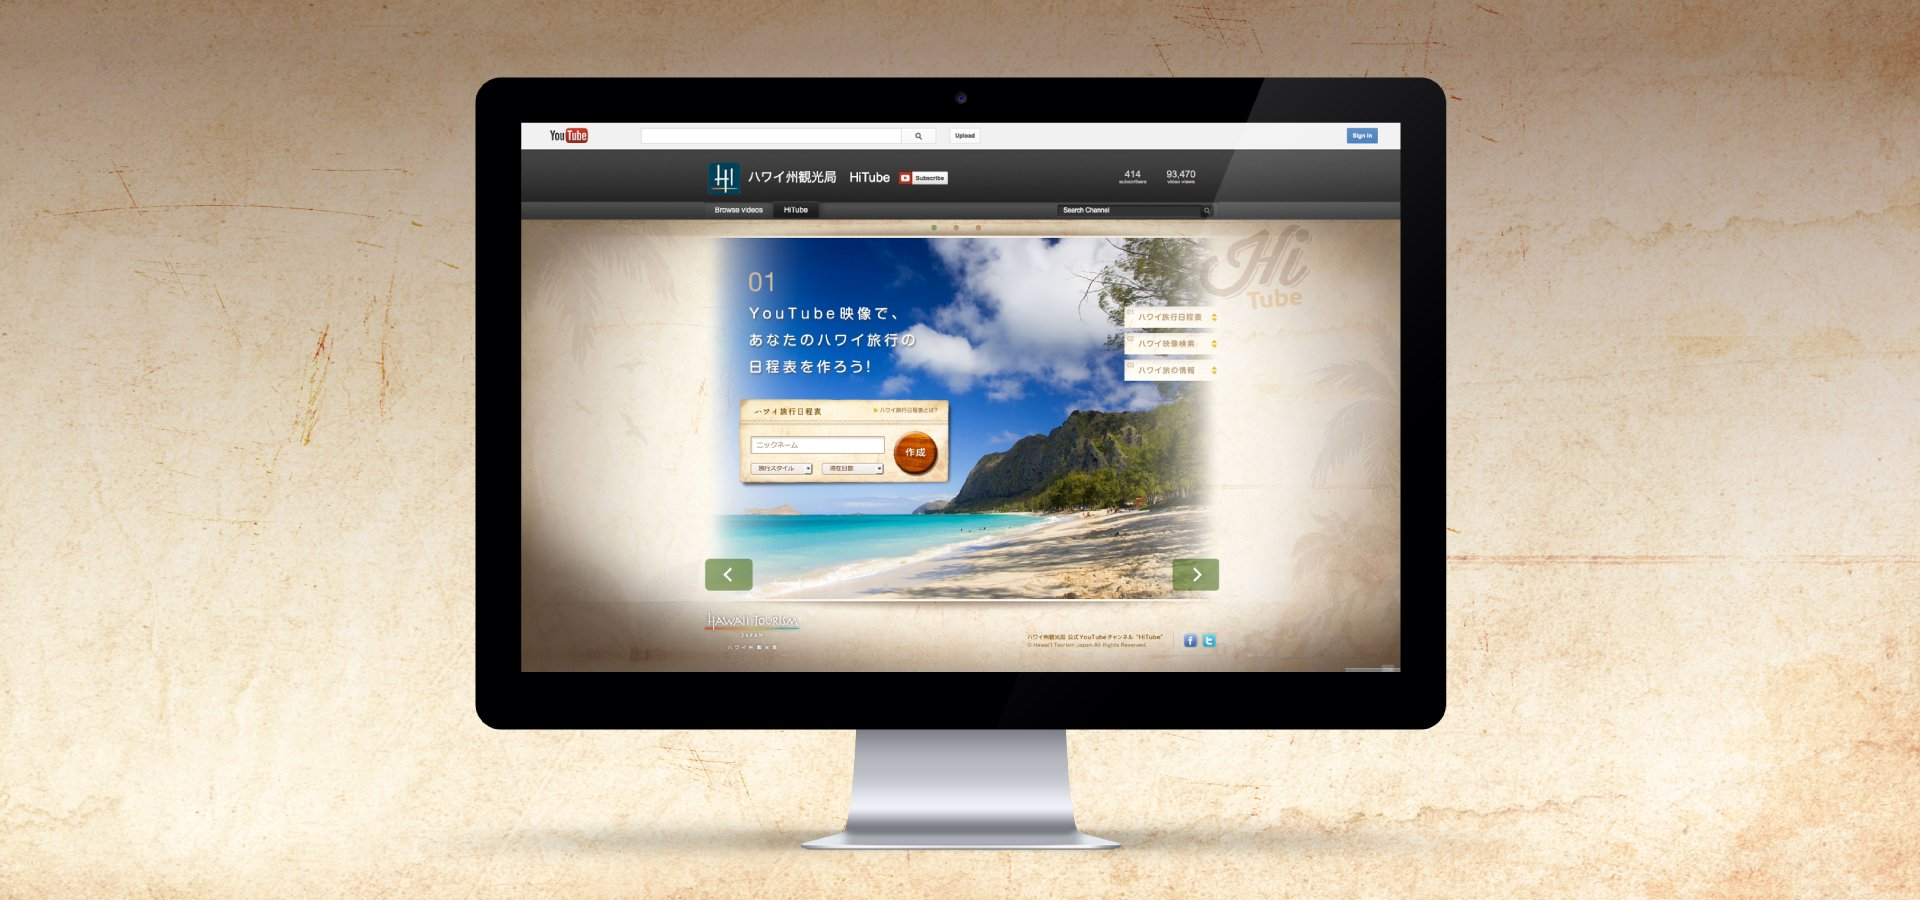 HiTube Hawaii Tourism Japan